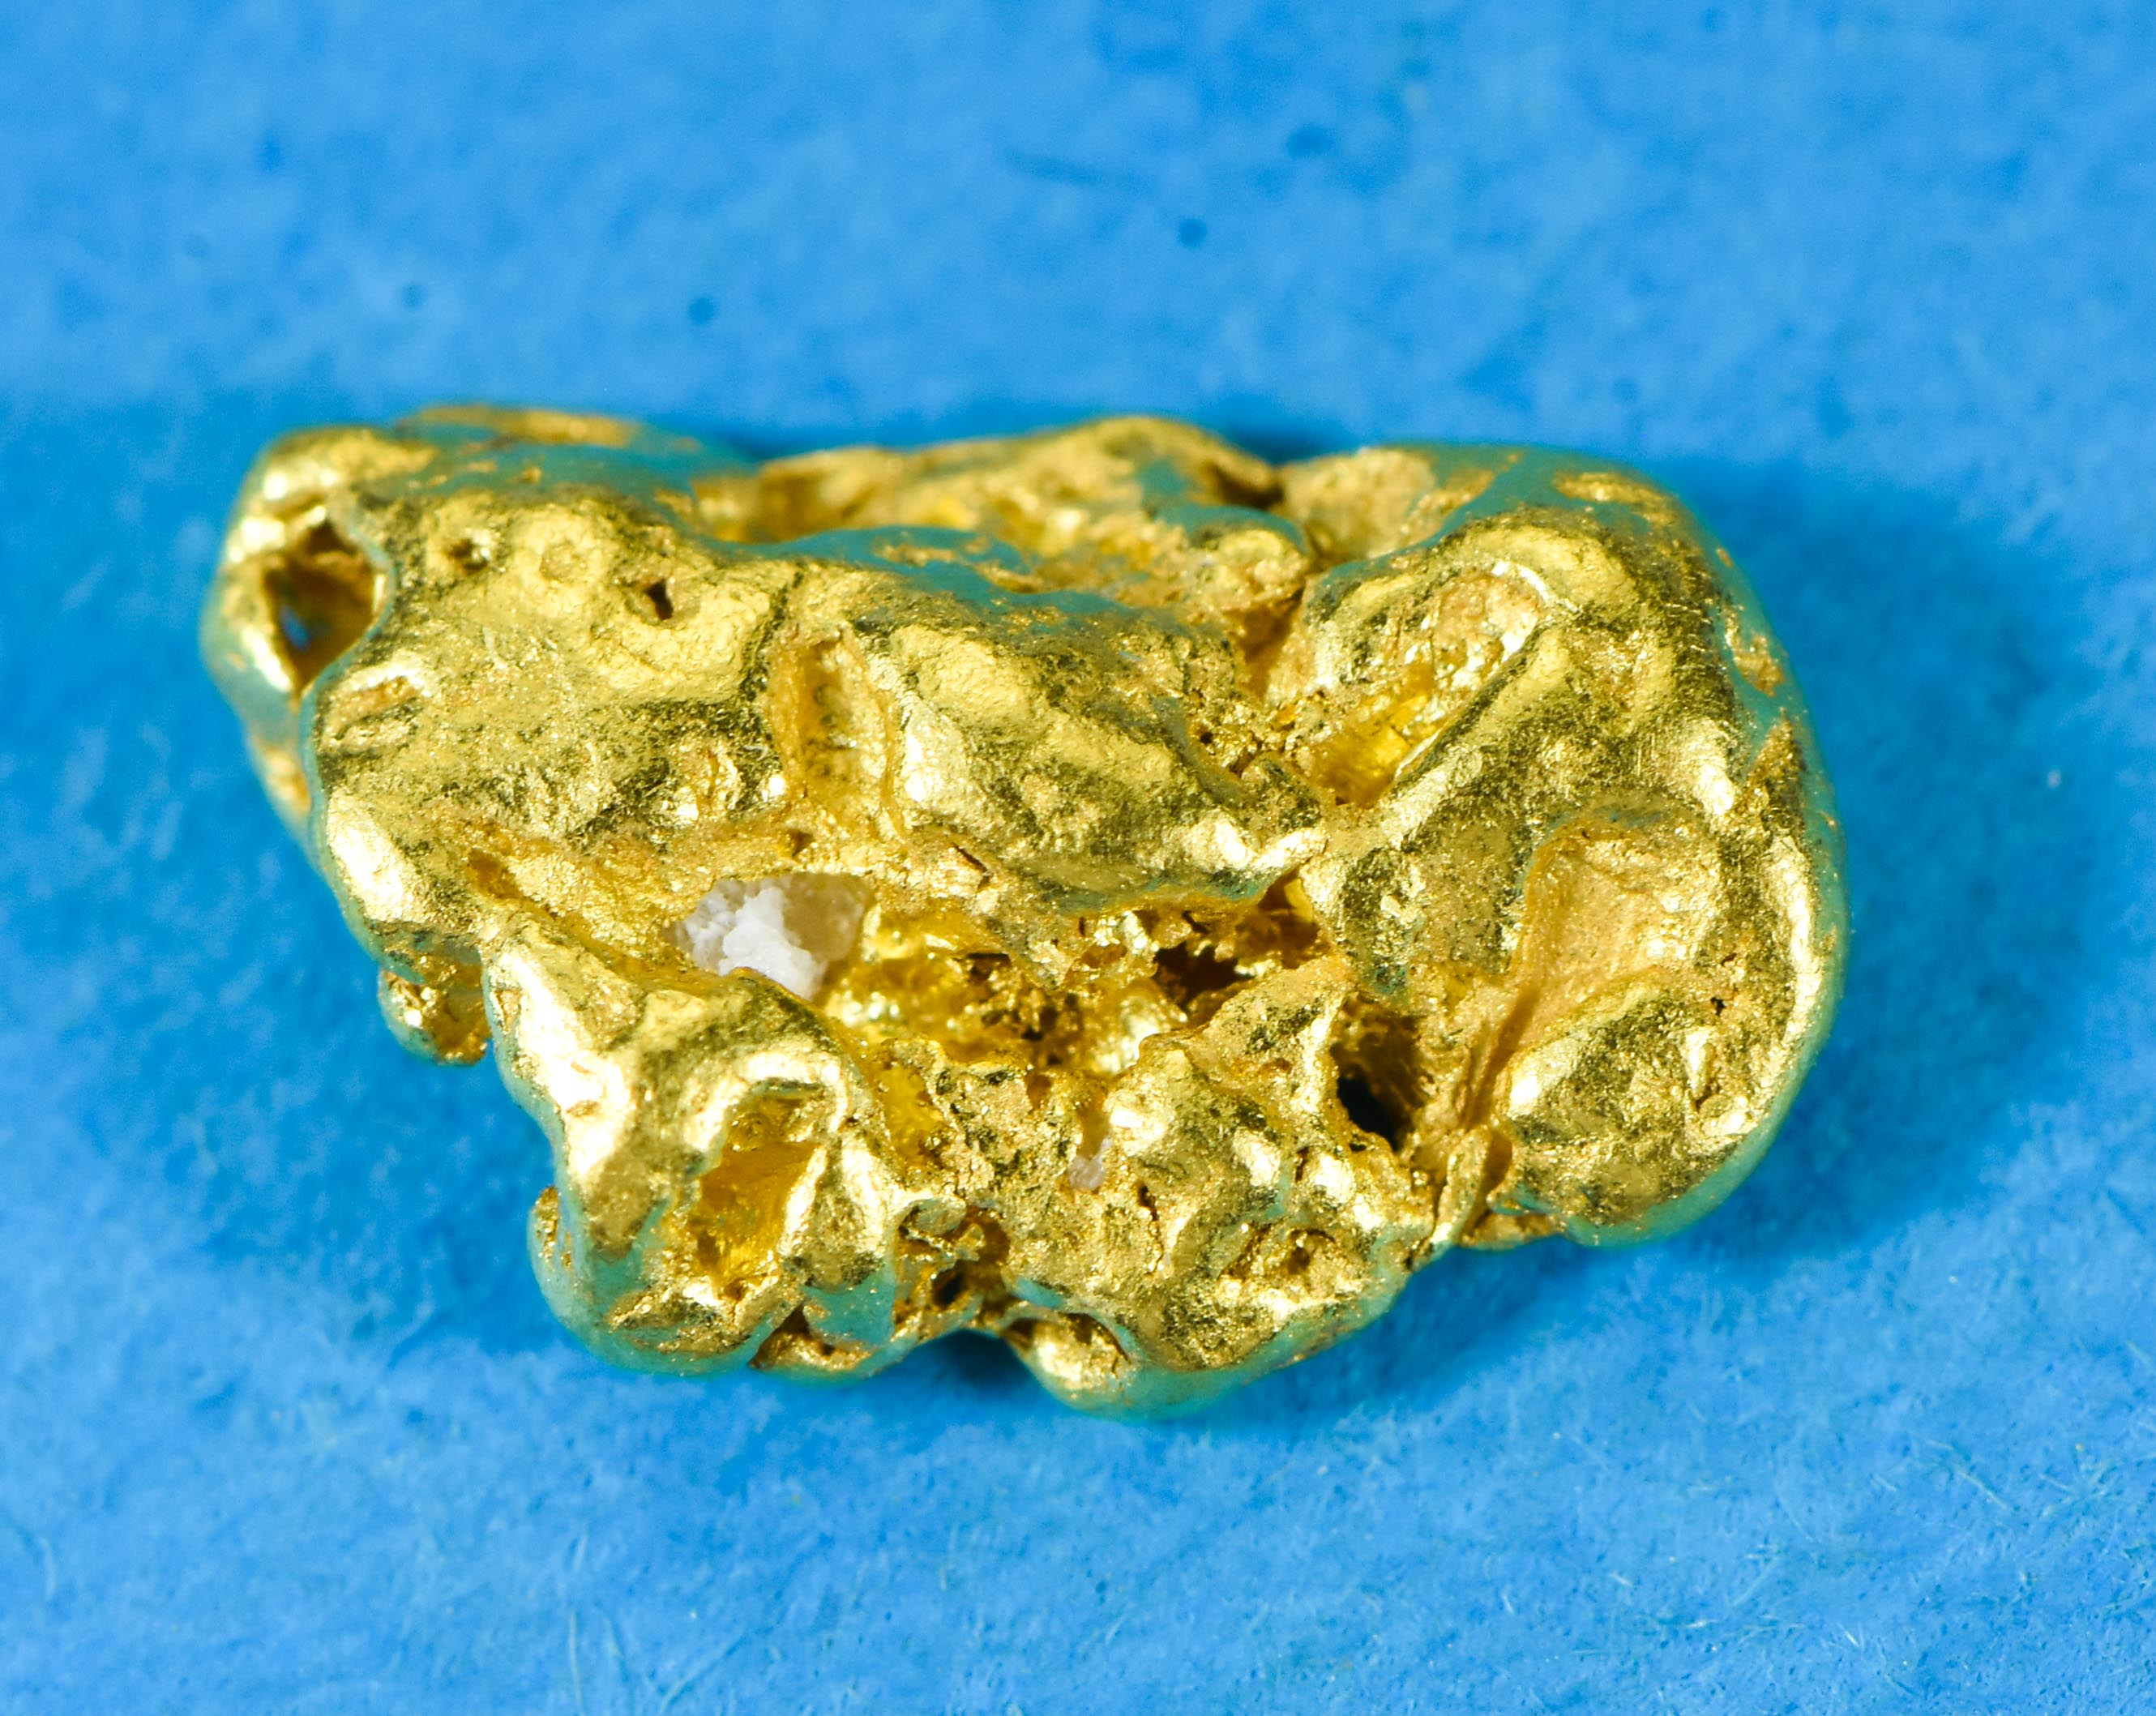 "L-94 Alaskan Yukon BC Leaf Gold Nugget "" Rare Genuine"" 4.11 Grams"